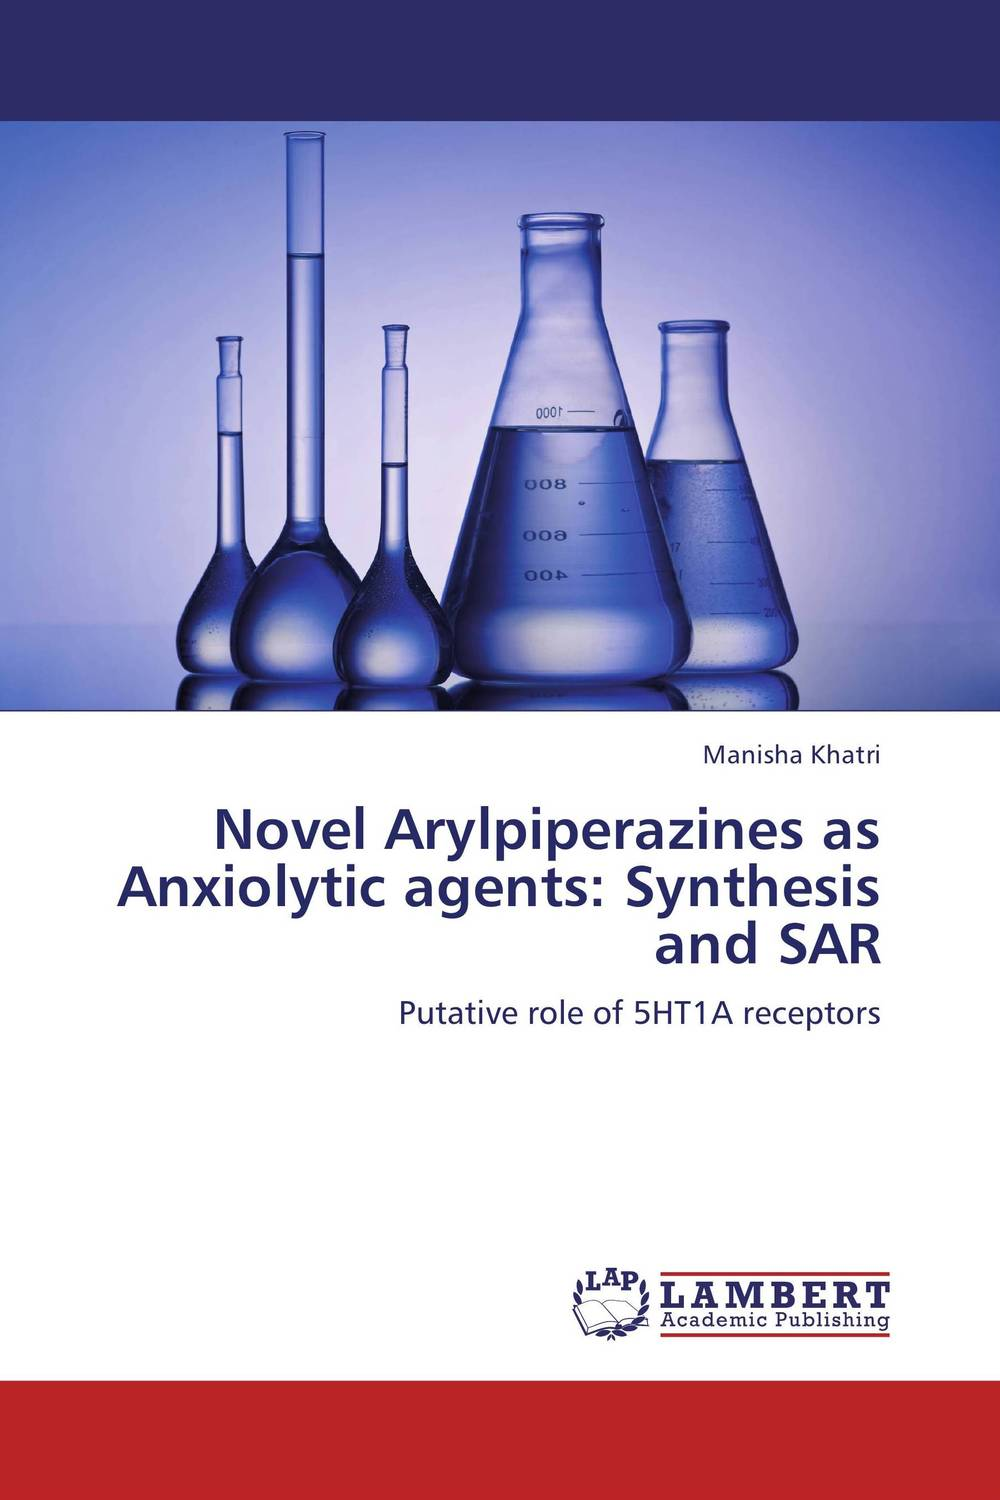 Novel Arylpiperazines as Anxiolytic agents: Synthesis and SAR functional genetics and psychiatric disorders